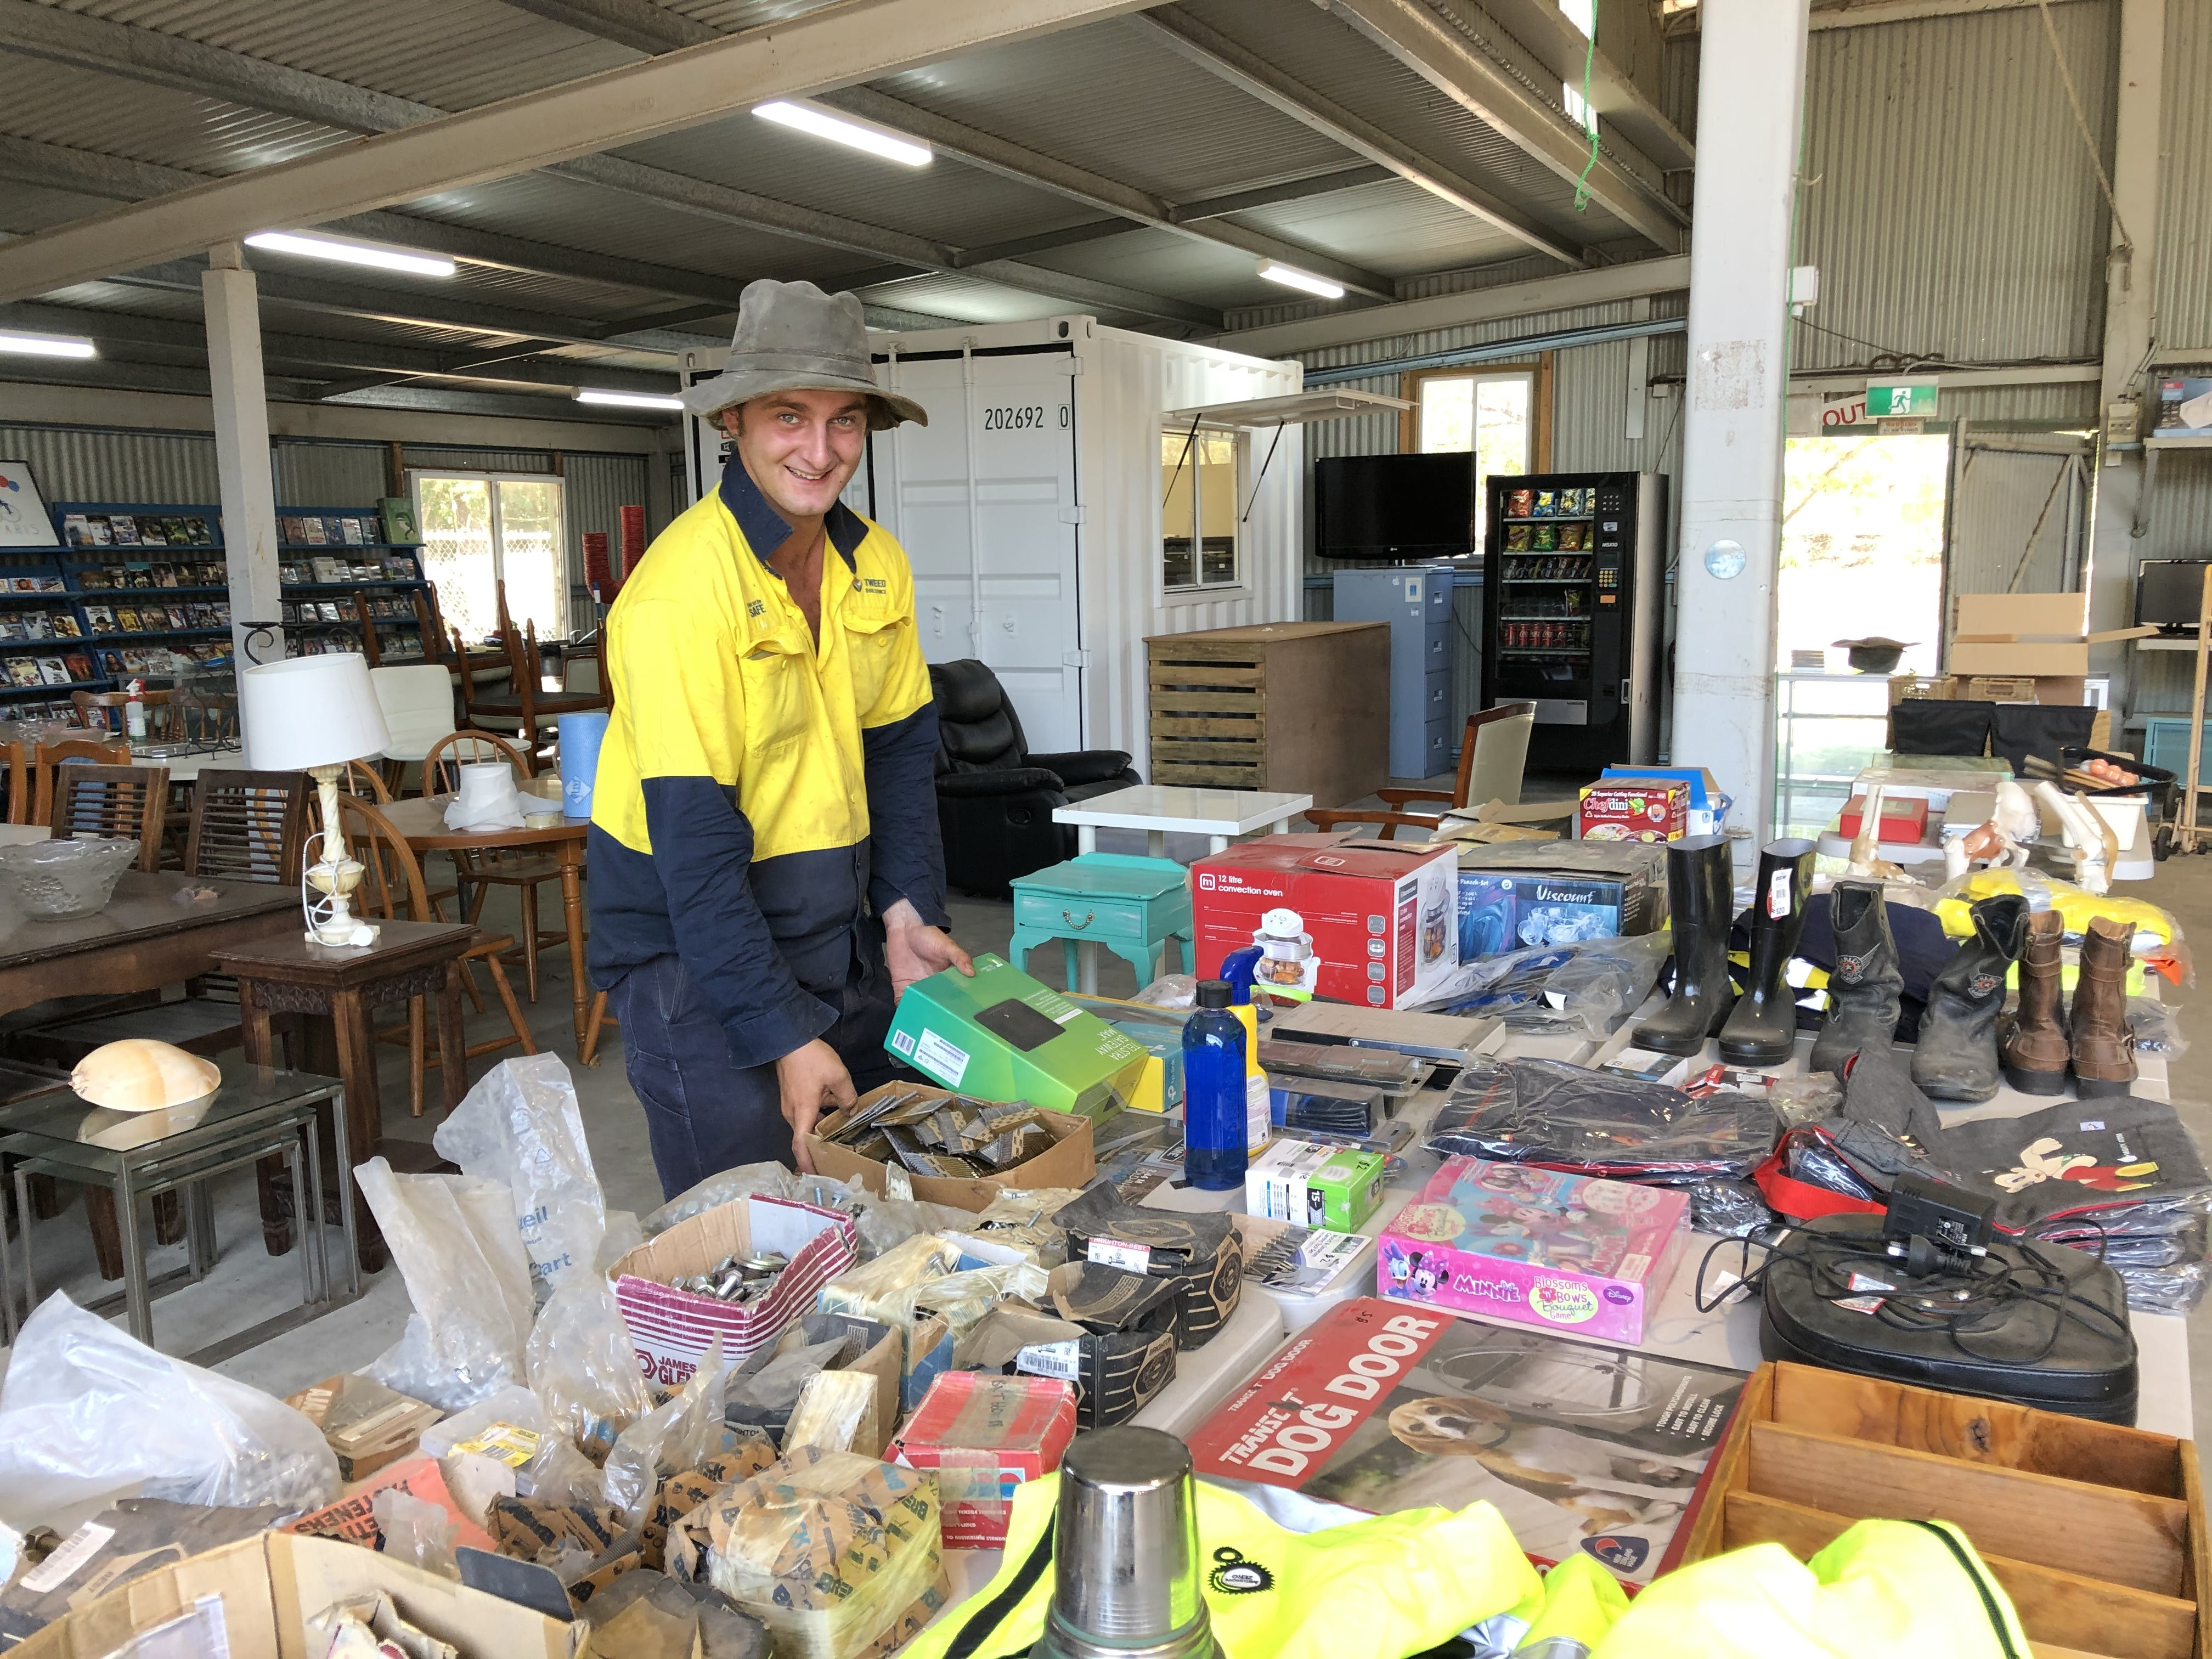 The Tip Shop at Stotts Creek Resource Recovery Centre diverts items from going to landfill